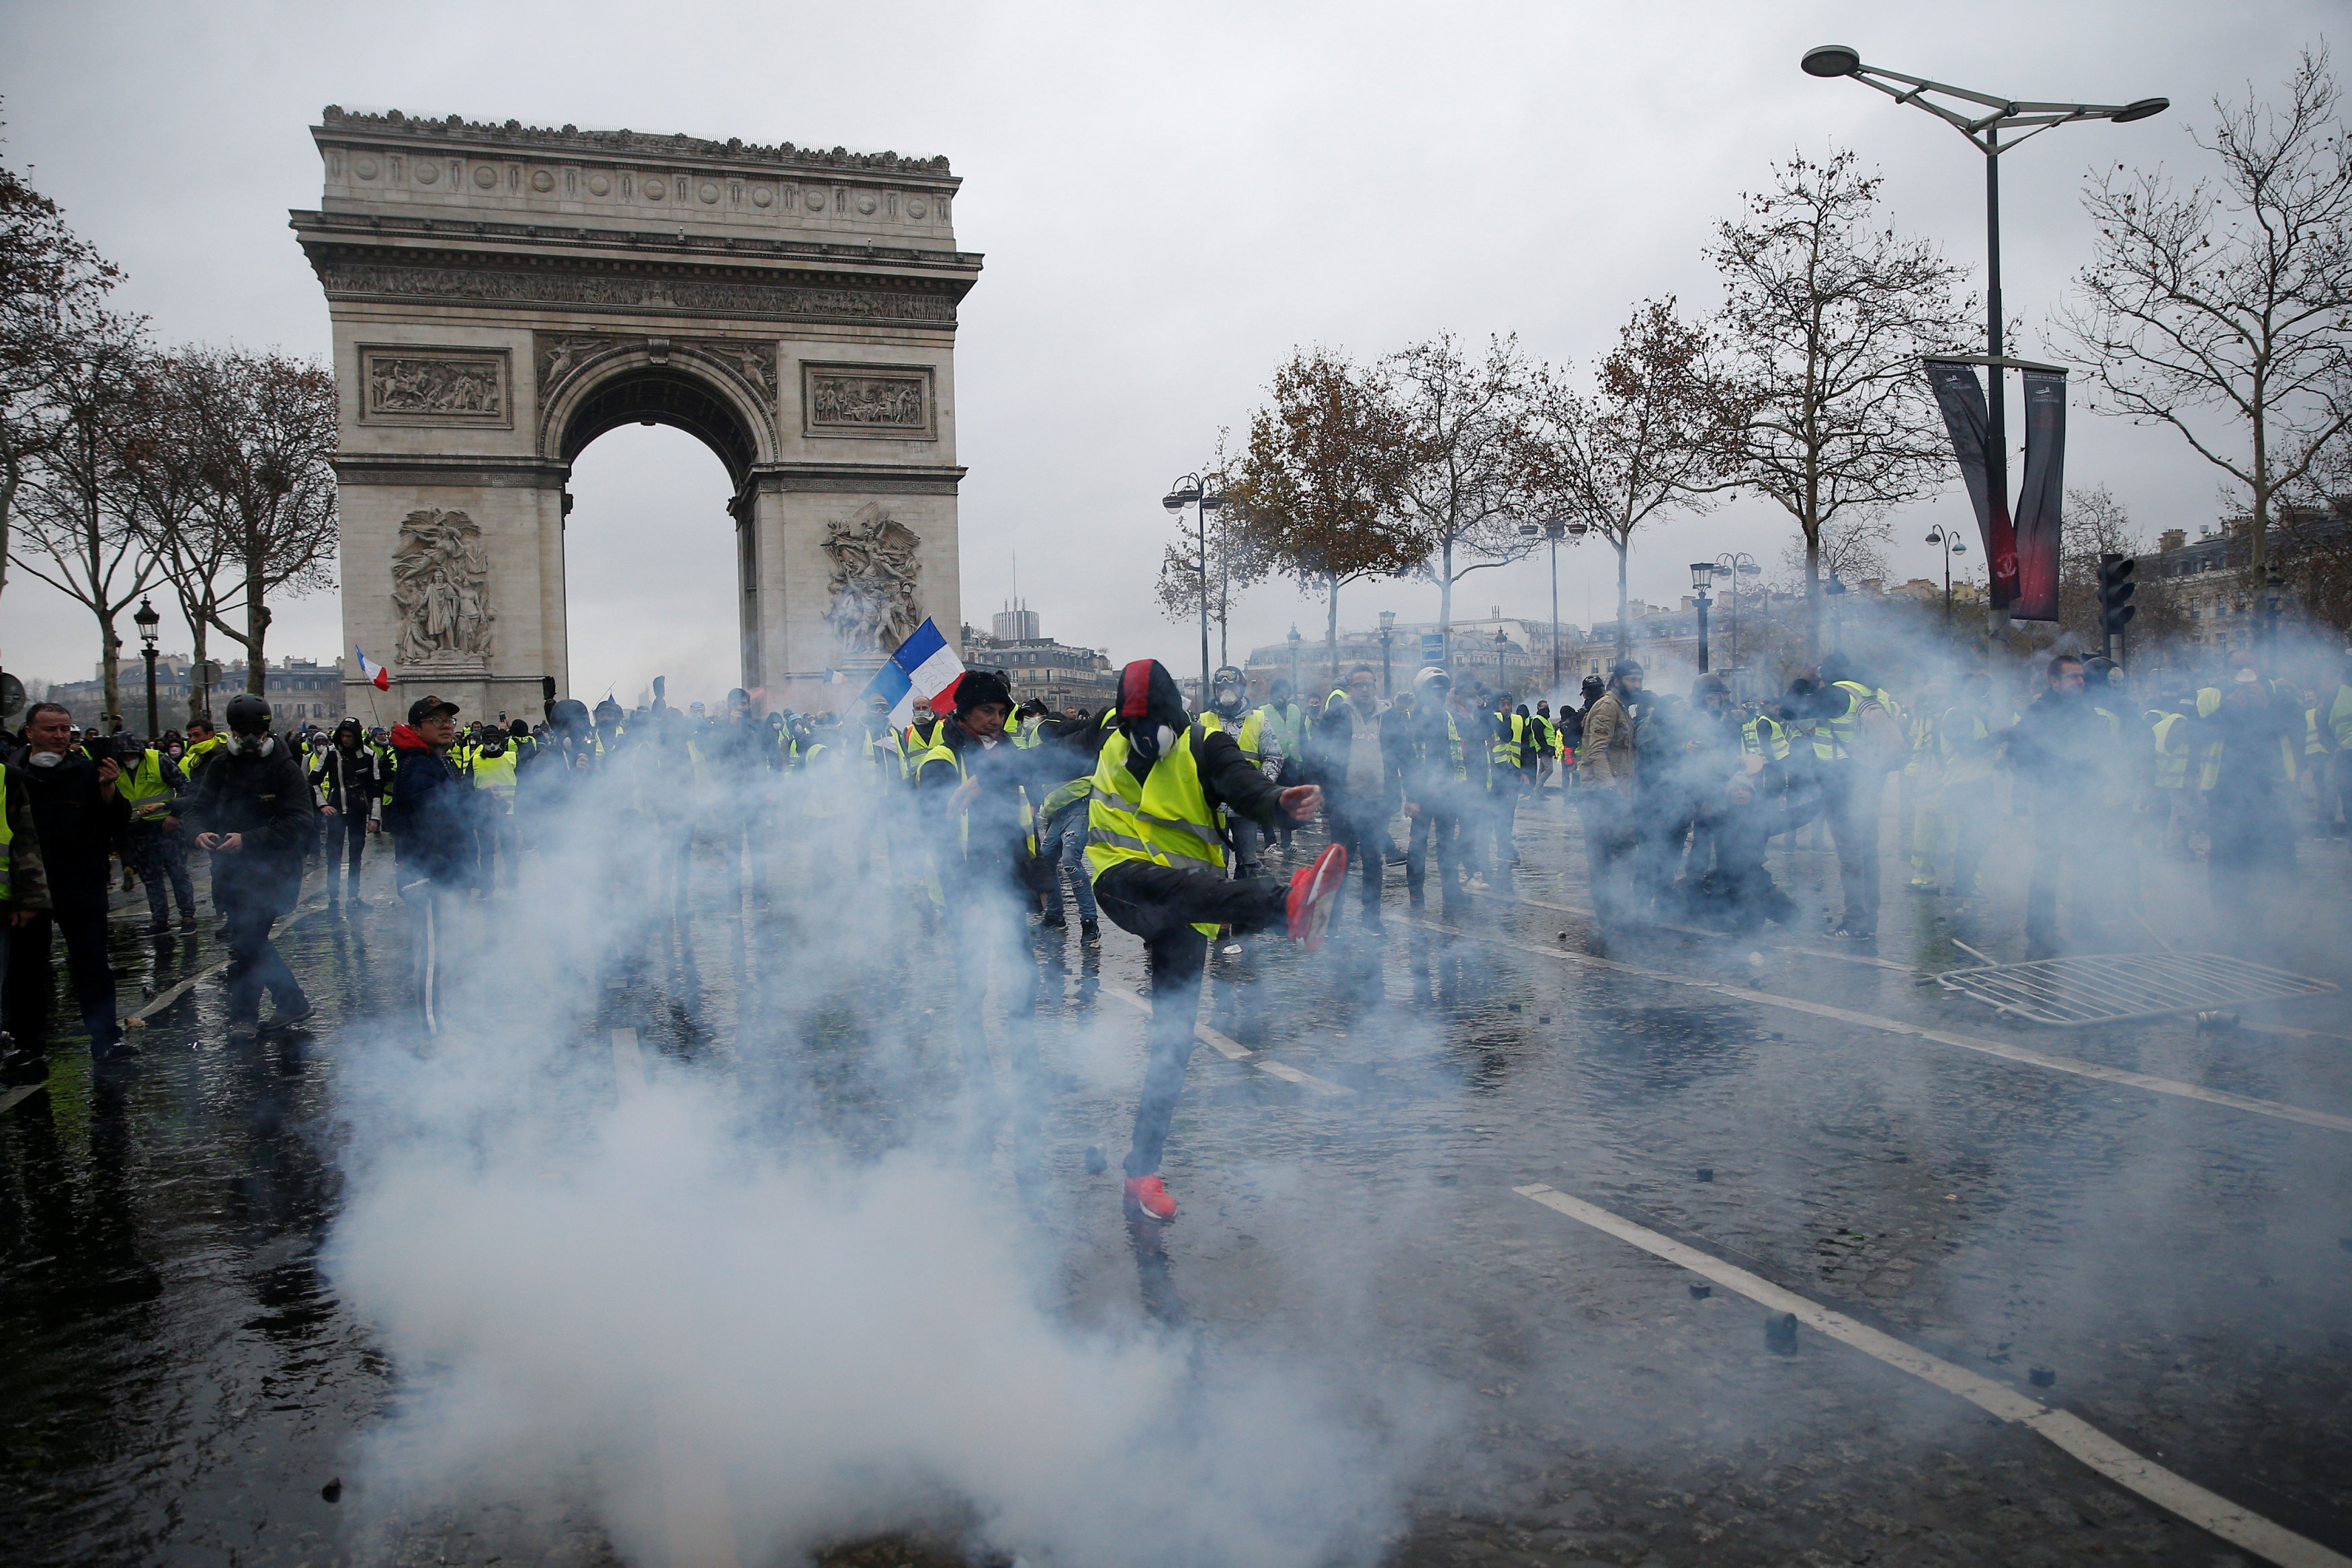 2018-12-01T162326Z_1622254384_RC11B46A0770_RTRMADP_3_FRANCE-PROTESTS